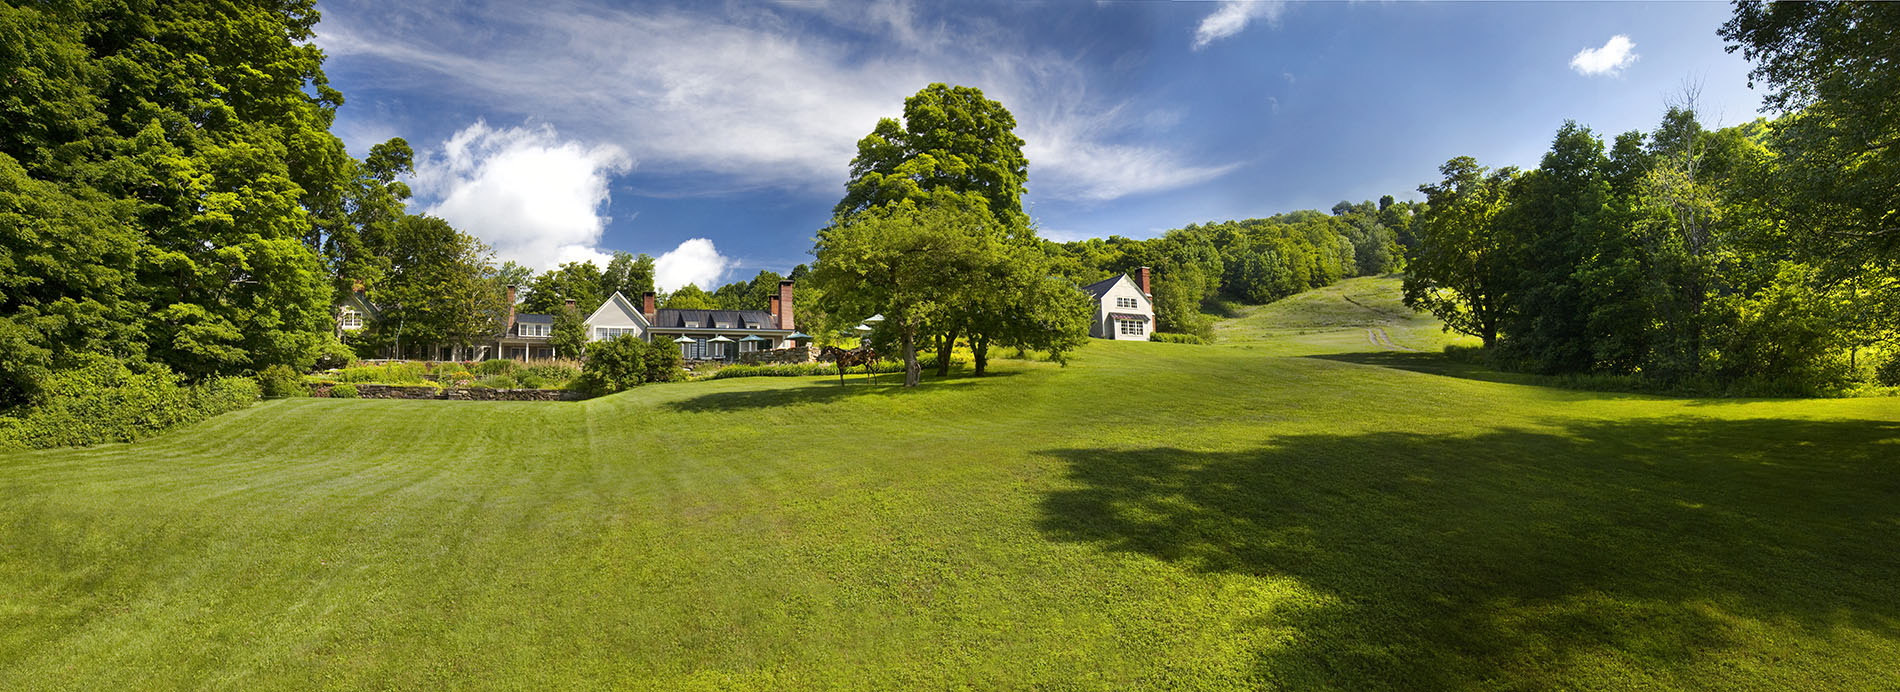 Twin Farms Resort in Barnard, Vermont